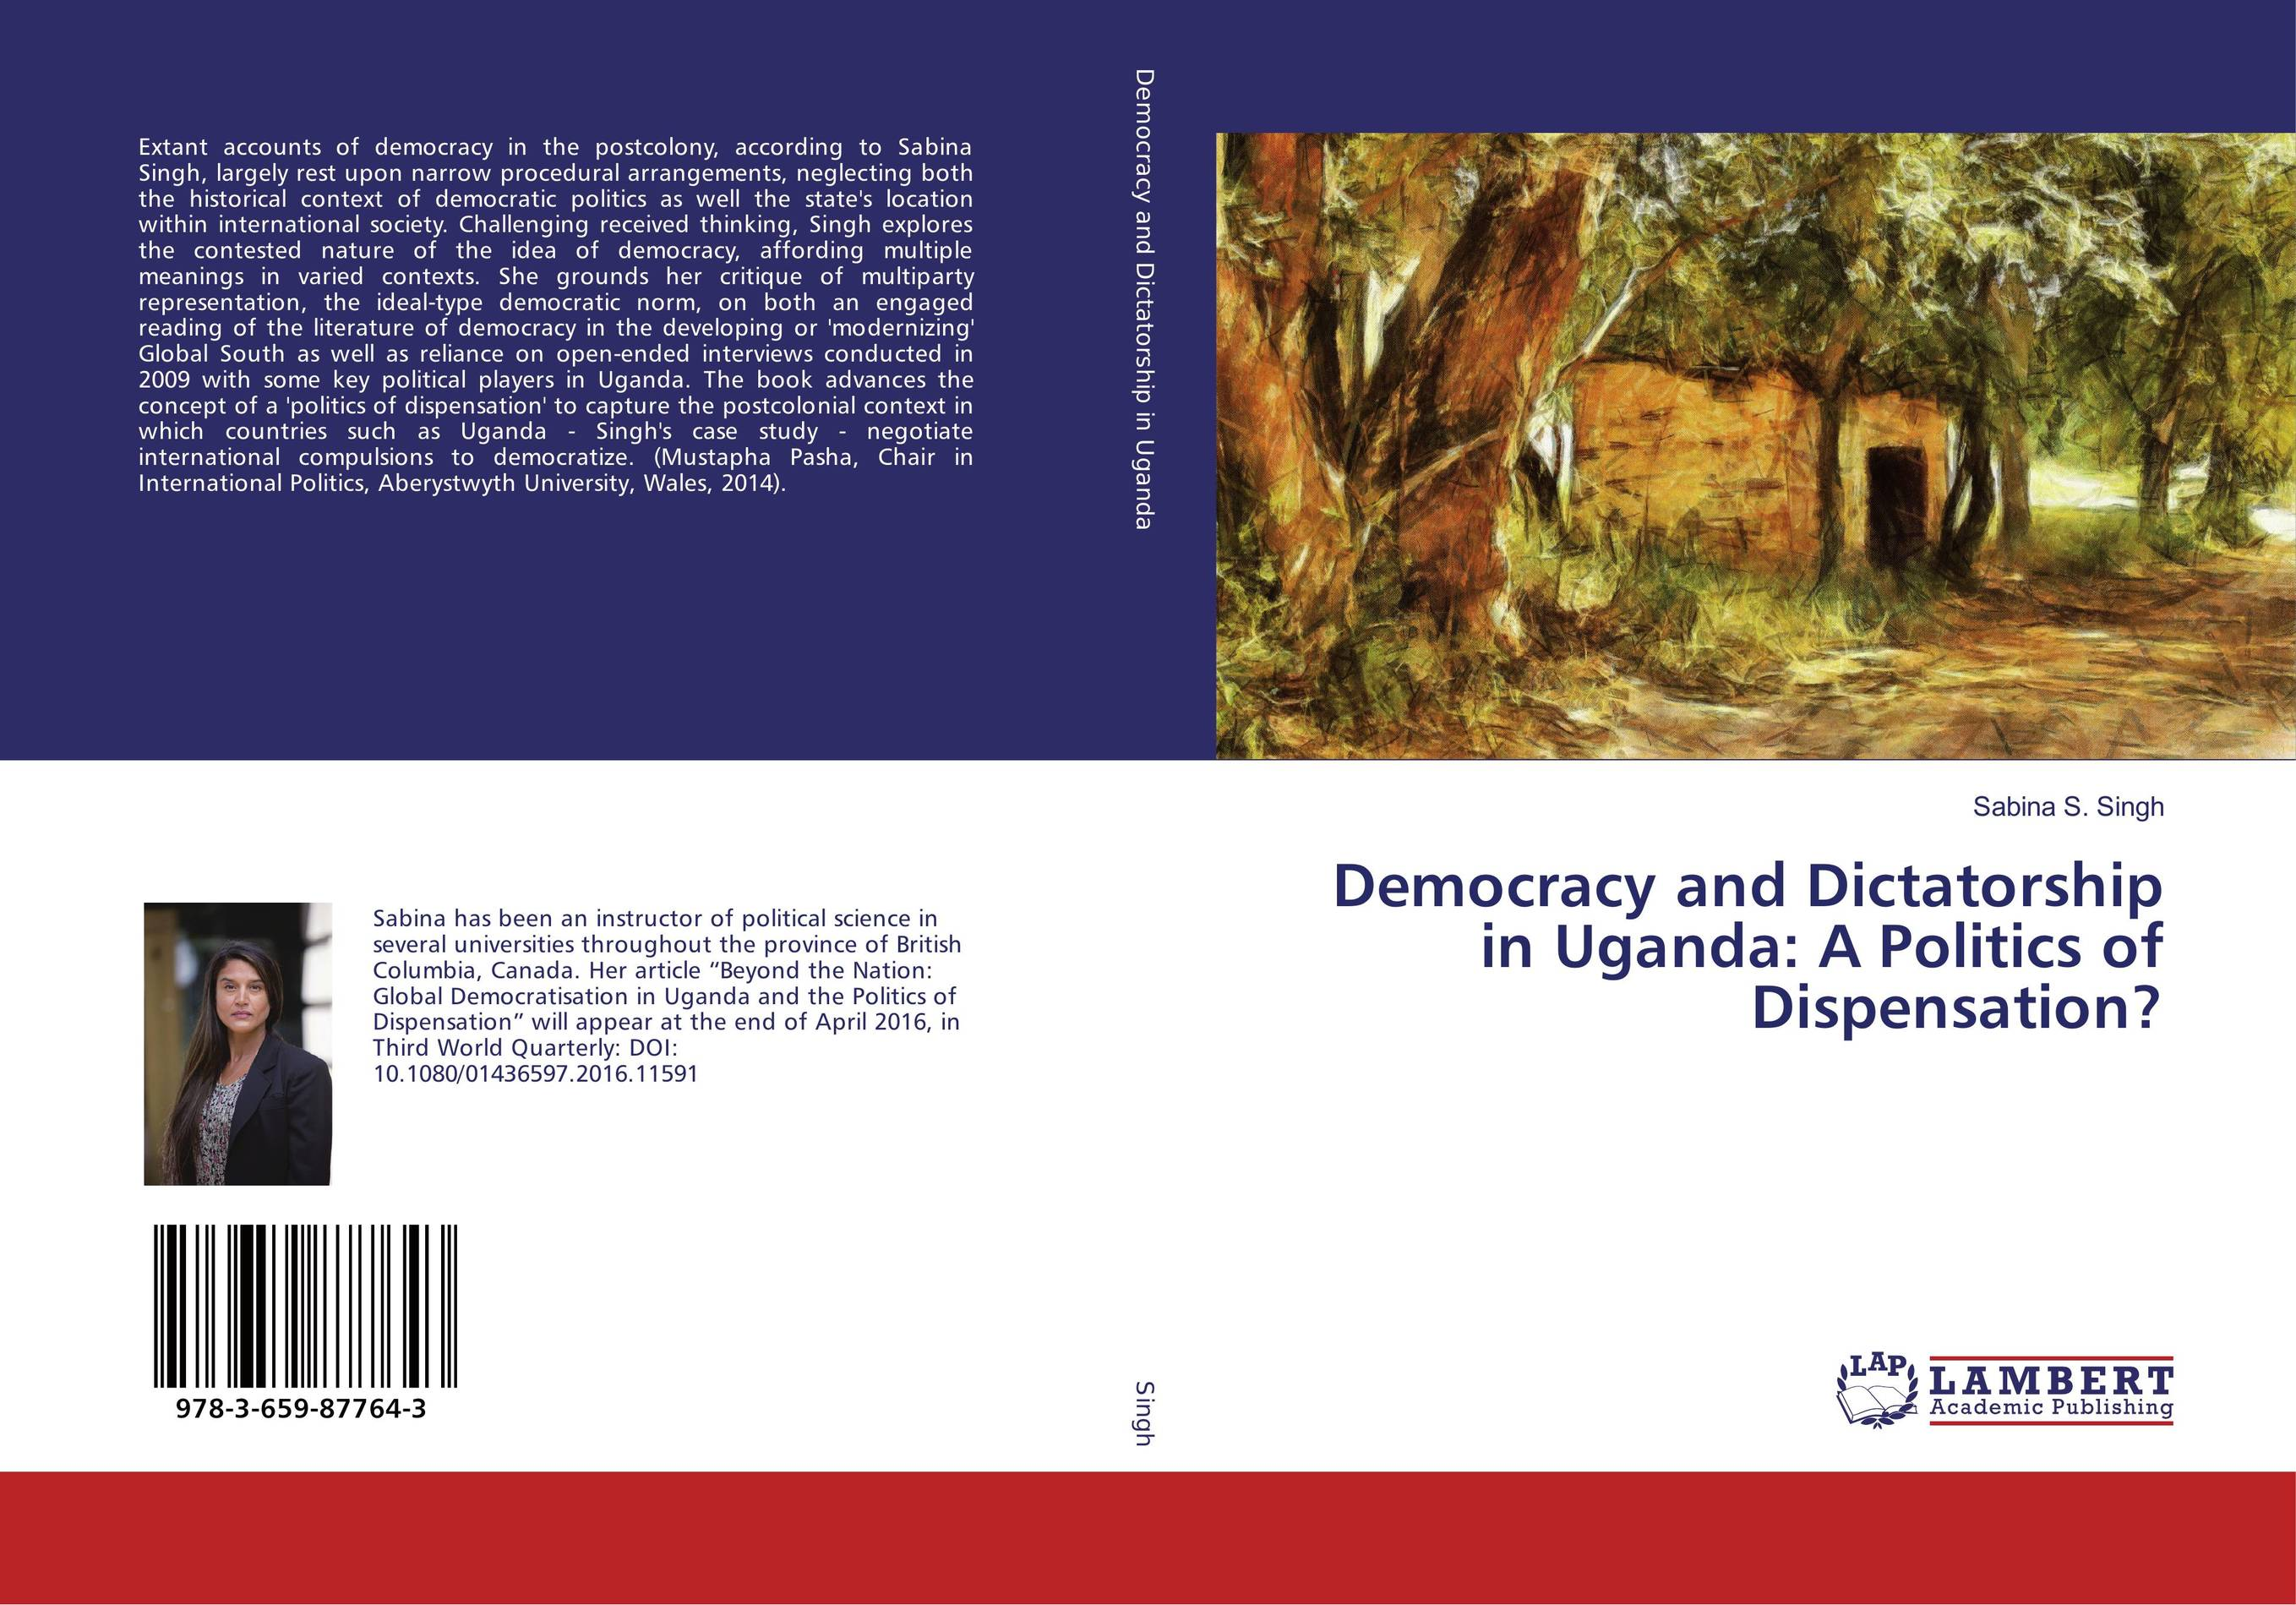 Democracy and Dictatorship in Uganda: A Politics of Dispensation? jaspal singh and ravinder pal singh effects of aging temperature and time on synthesis of hydroxyapatite